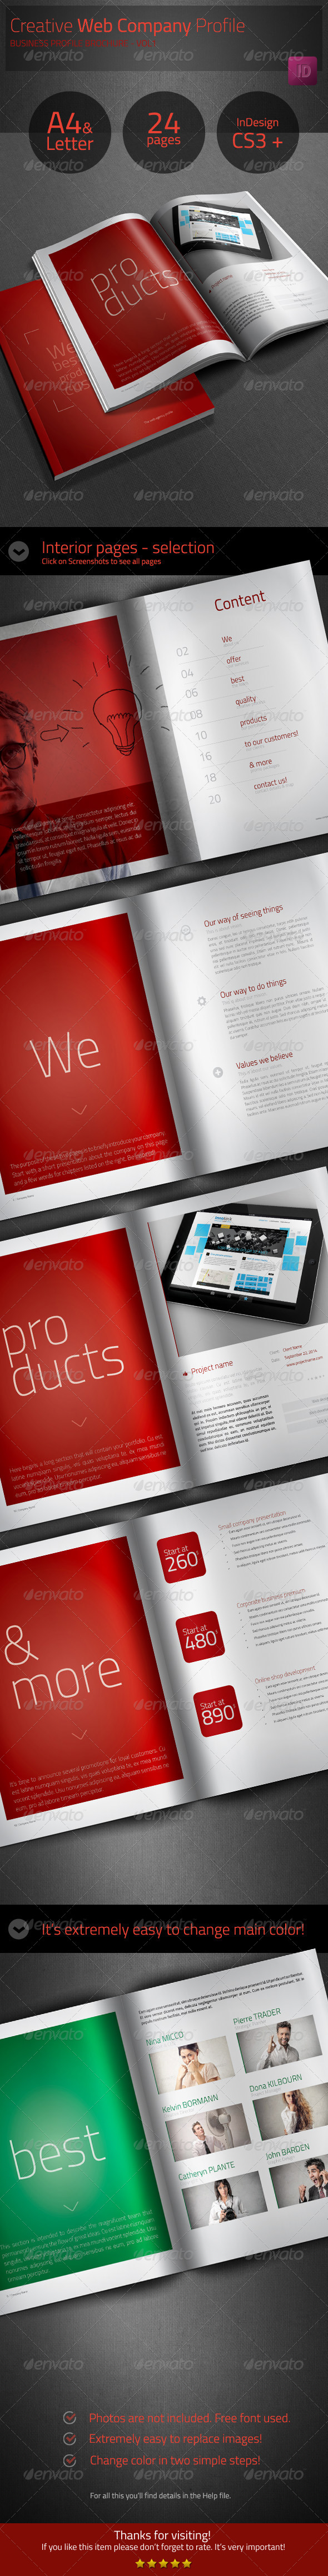 GraphicRiver Creative Web Company Profile Business Brochure 6322913